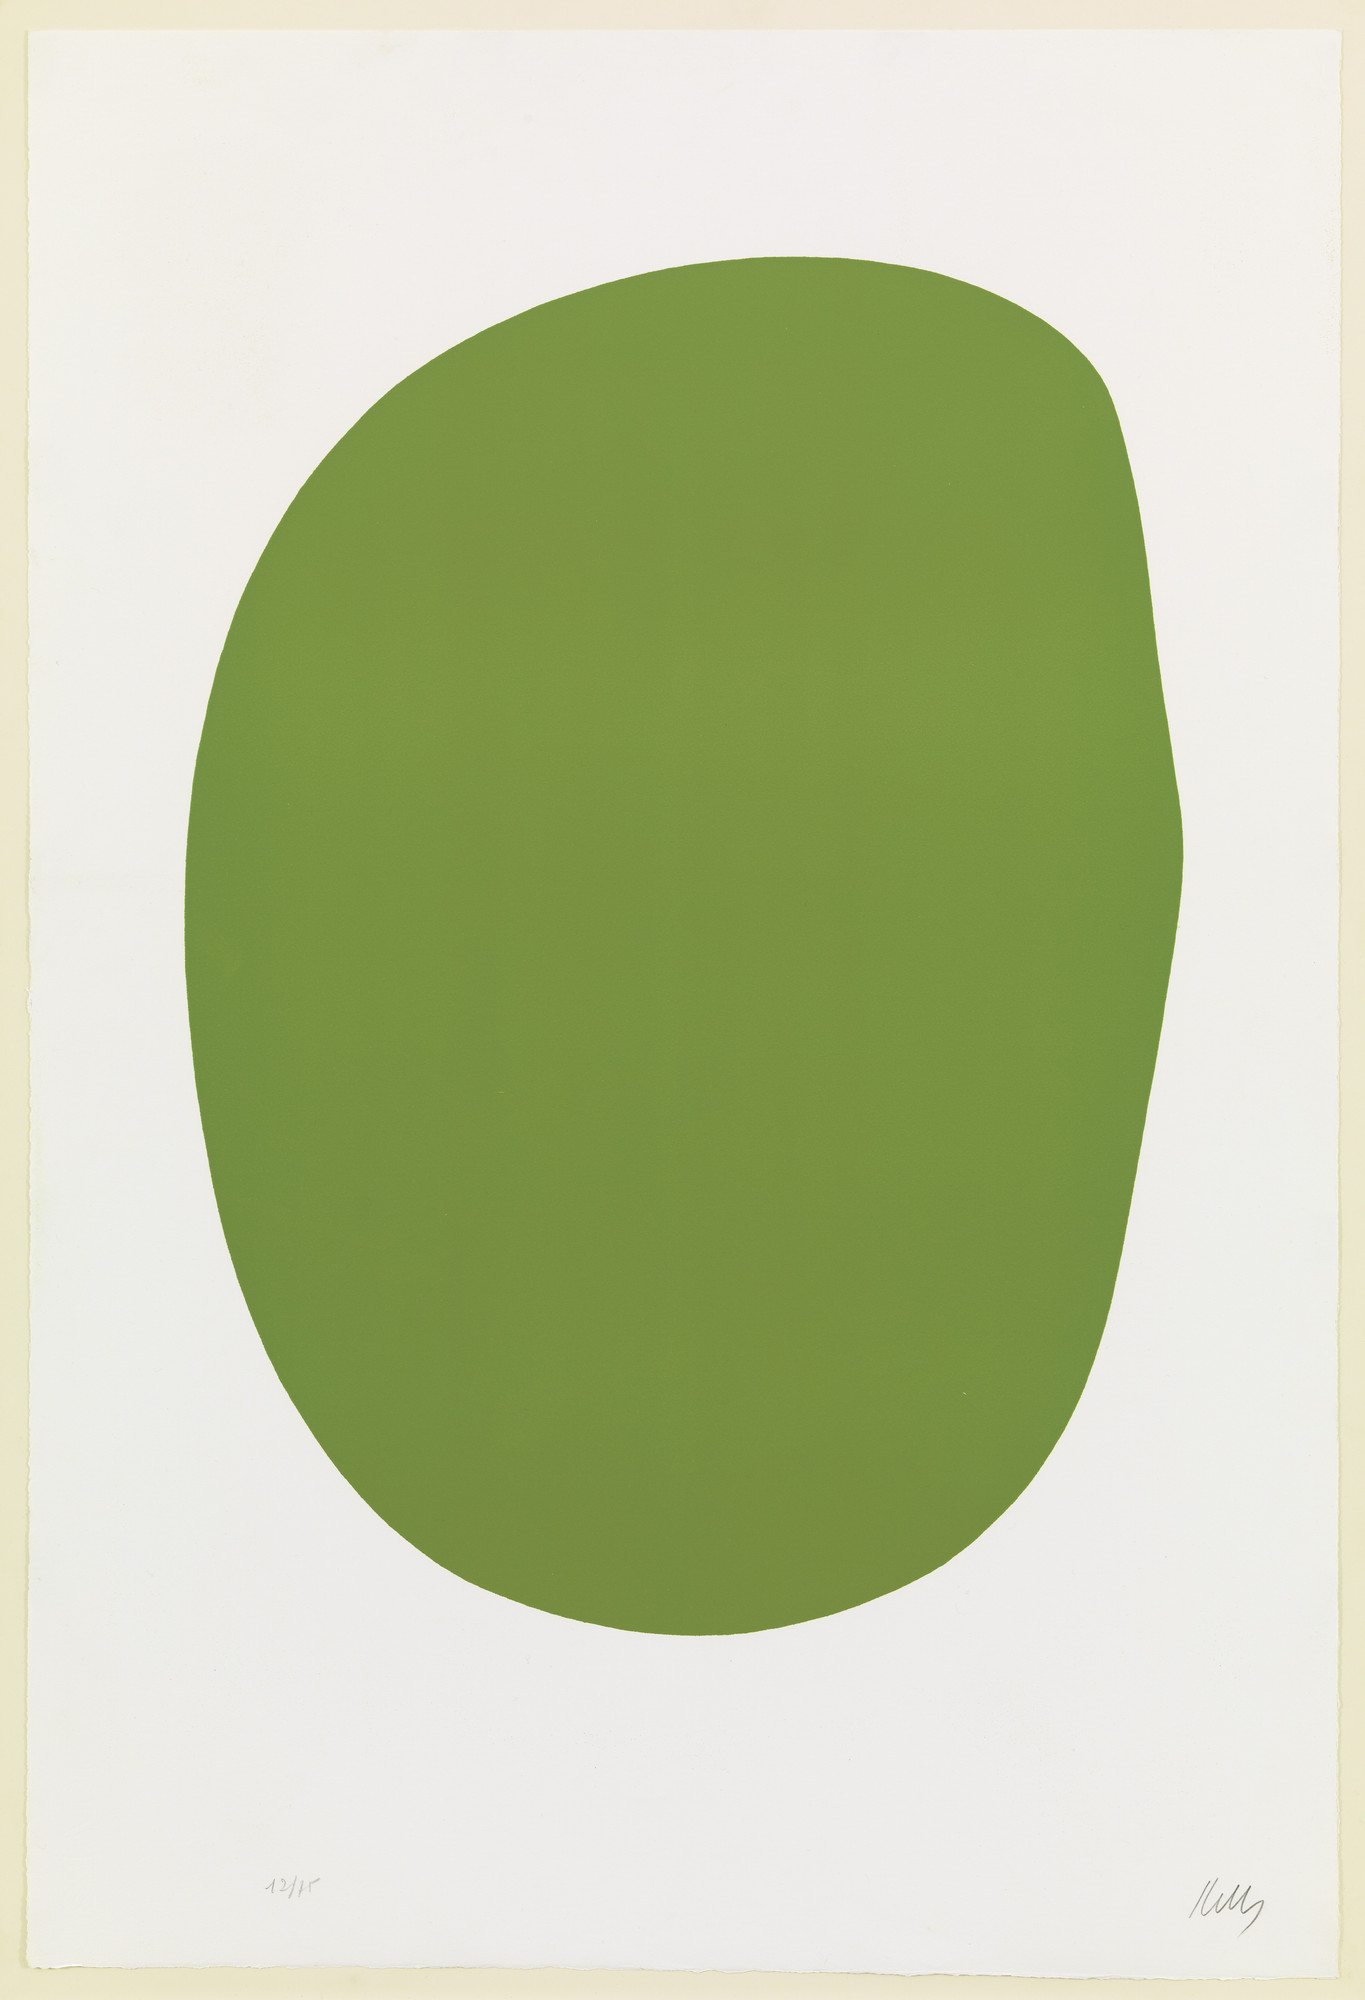 Ellsworth Kelly. Green (Vert) from Suite of Twenty-Seven Color Lithographs. 1964–65